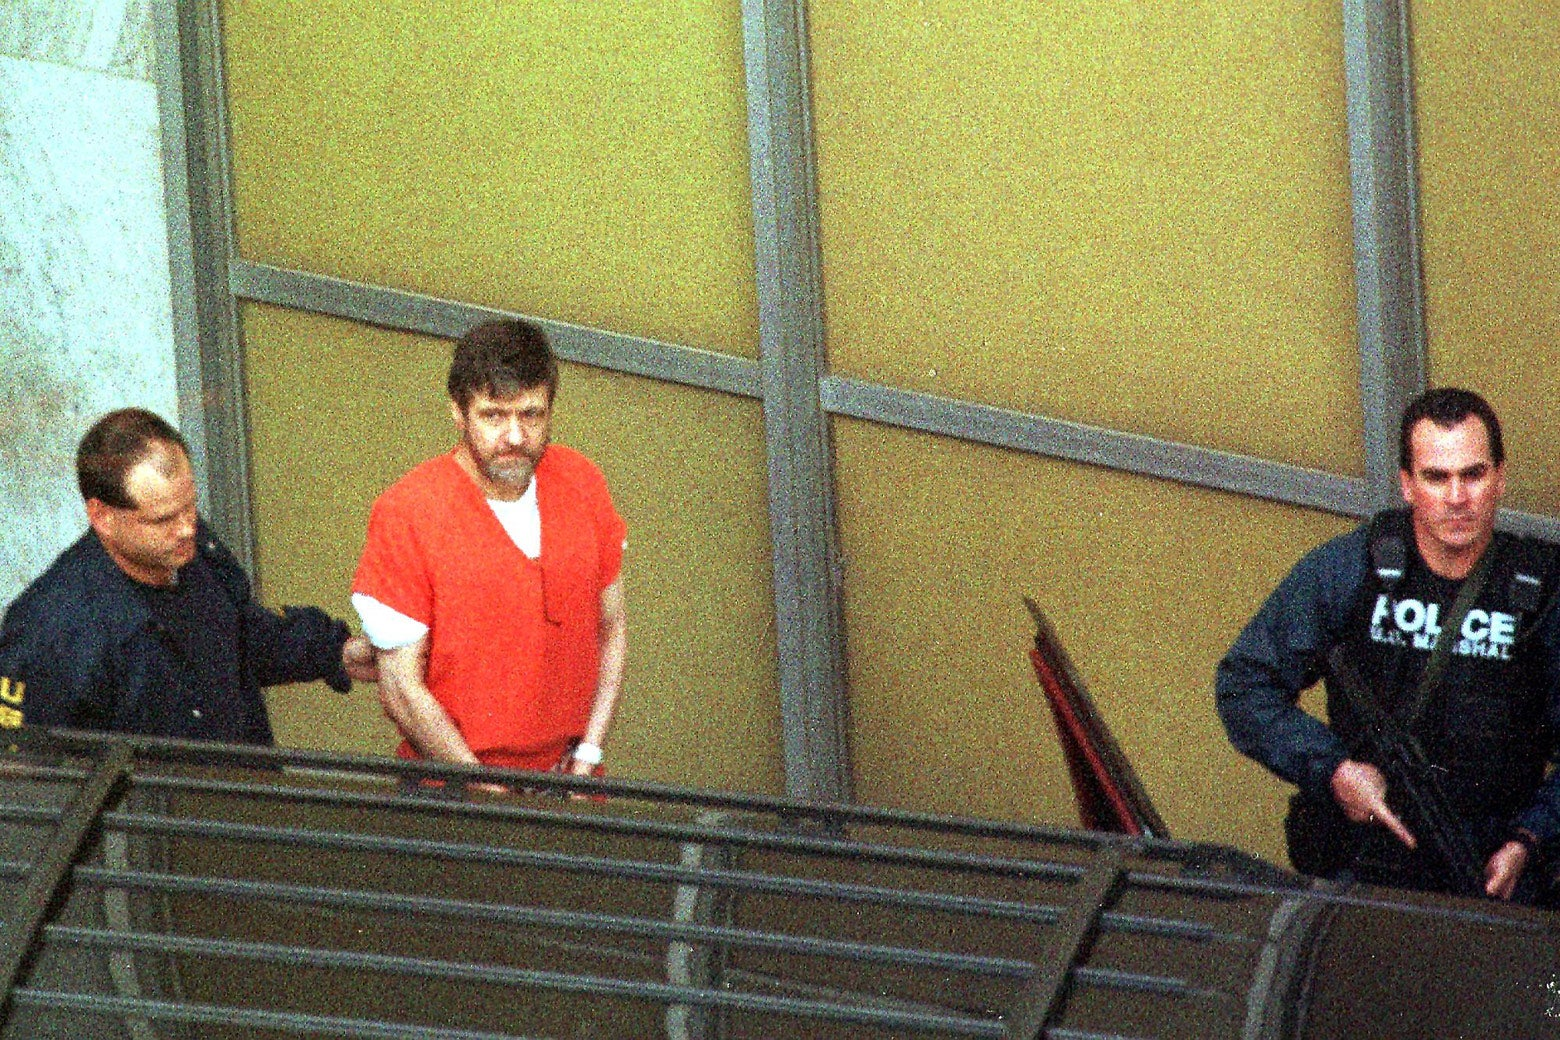 Theodore Kaczynski is led out by U.S. Marshals in Sacramento, California, after admitting to being the Unabomber.